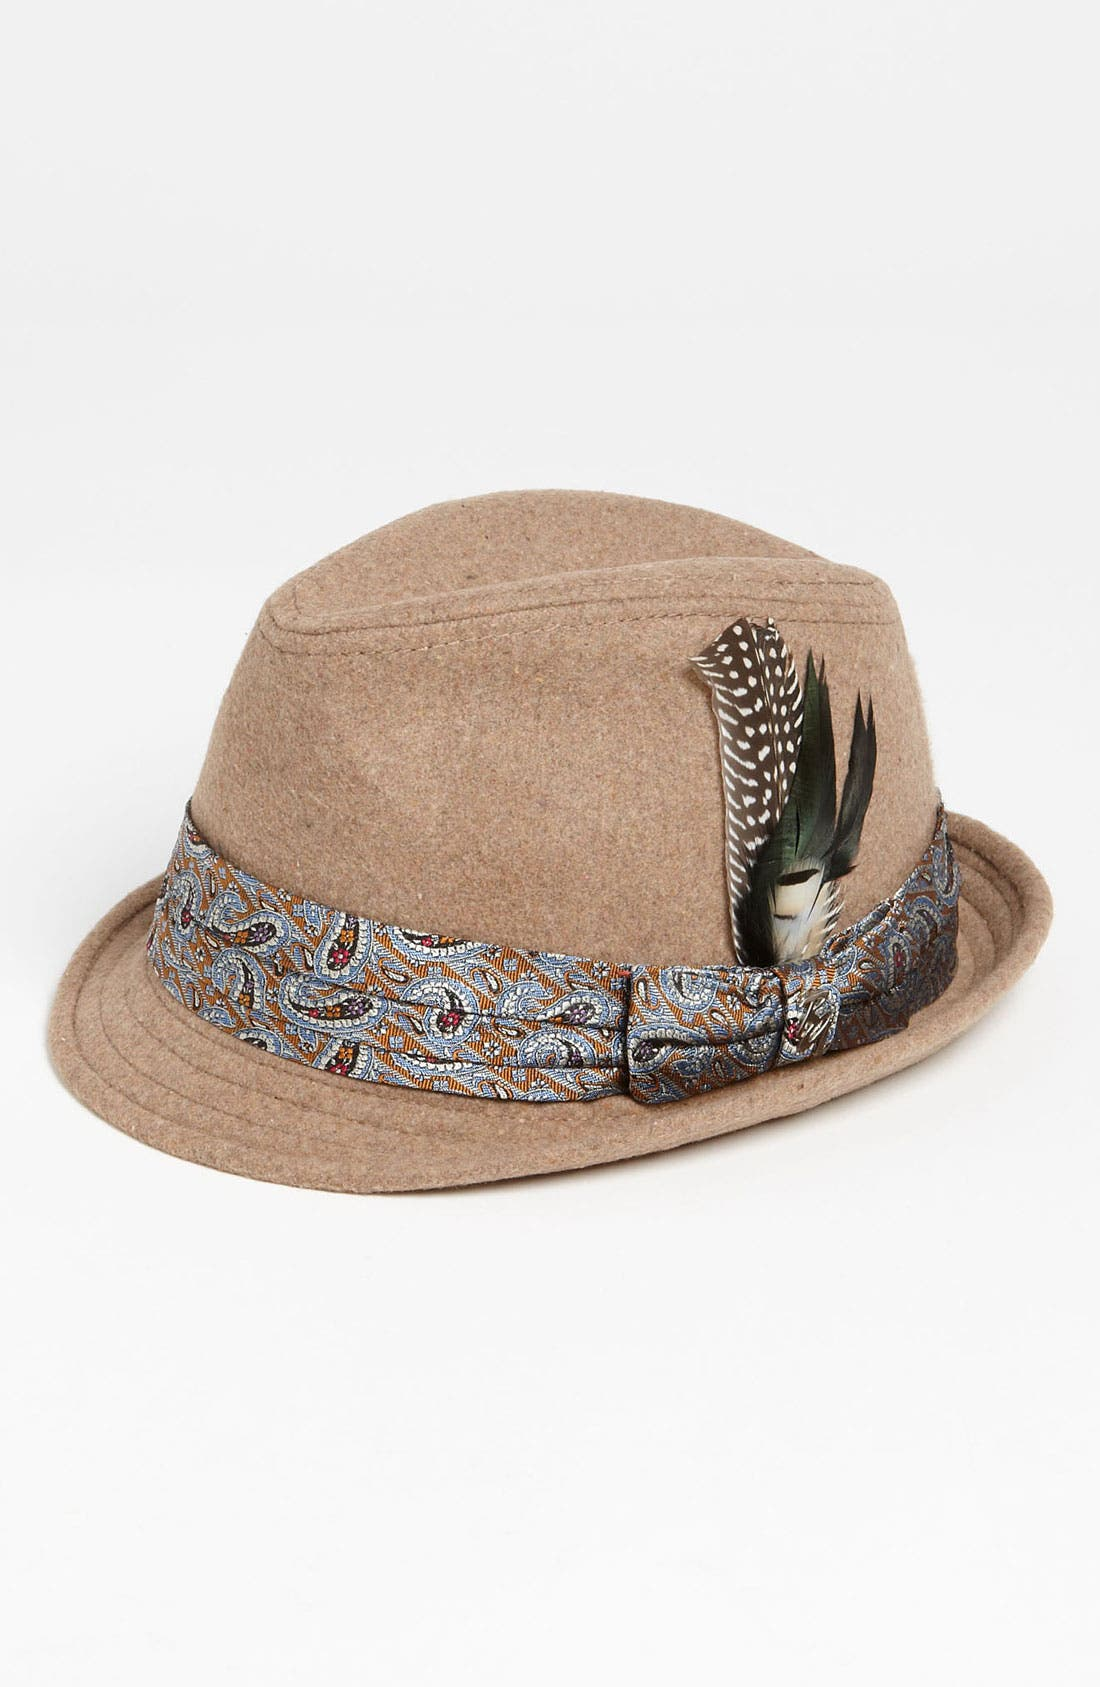 Alternate Image 1 Selected - Robert Graham 'Lancet' Fedora